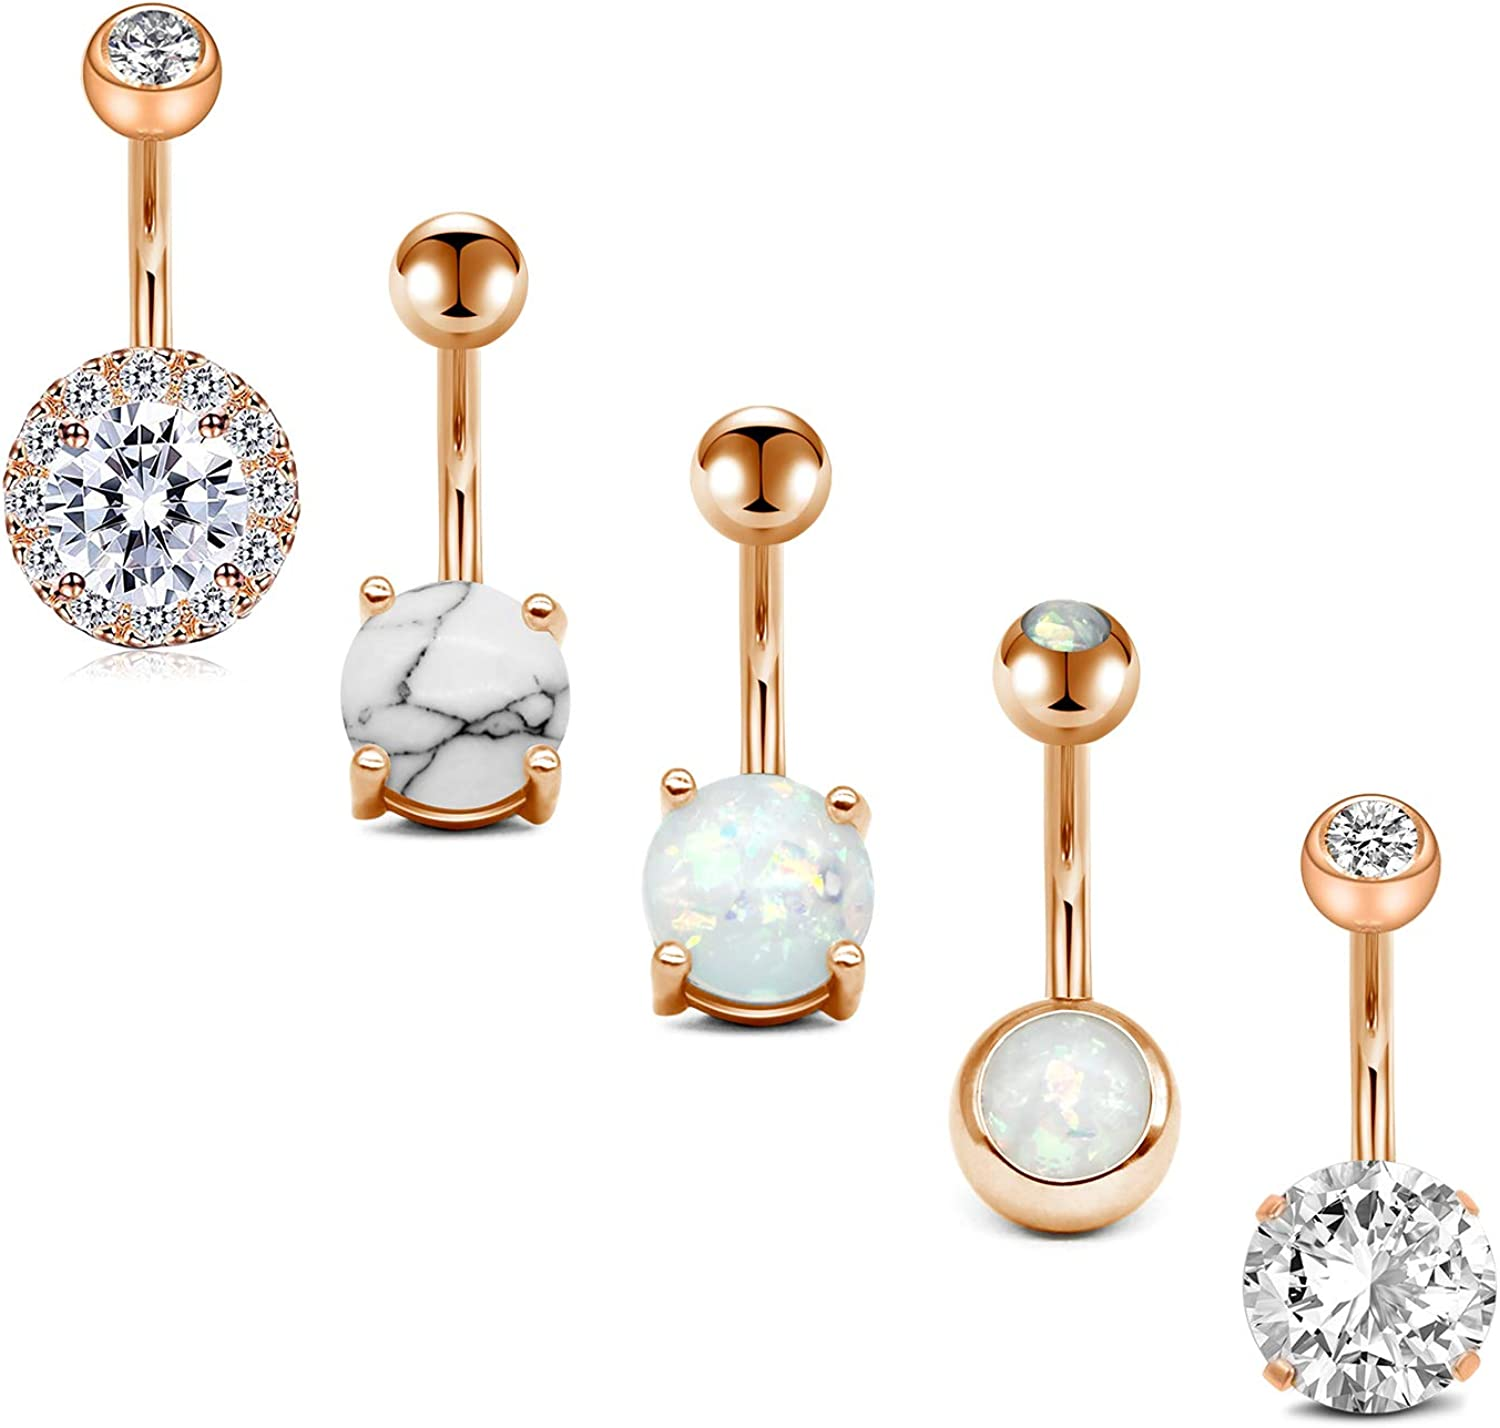 Briana Williams 14G Belly Button Rings Surgical Stainless Steel Belly Ring Navel Rings Piercing Heart CZ Opal Skull Hand Belly Button Piercing Jewelry for Women 10mm(3/8